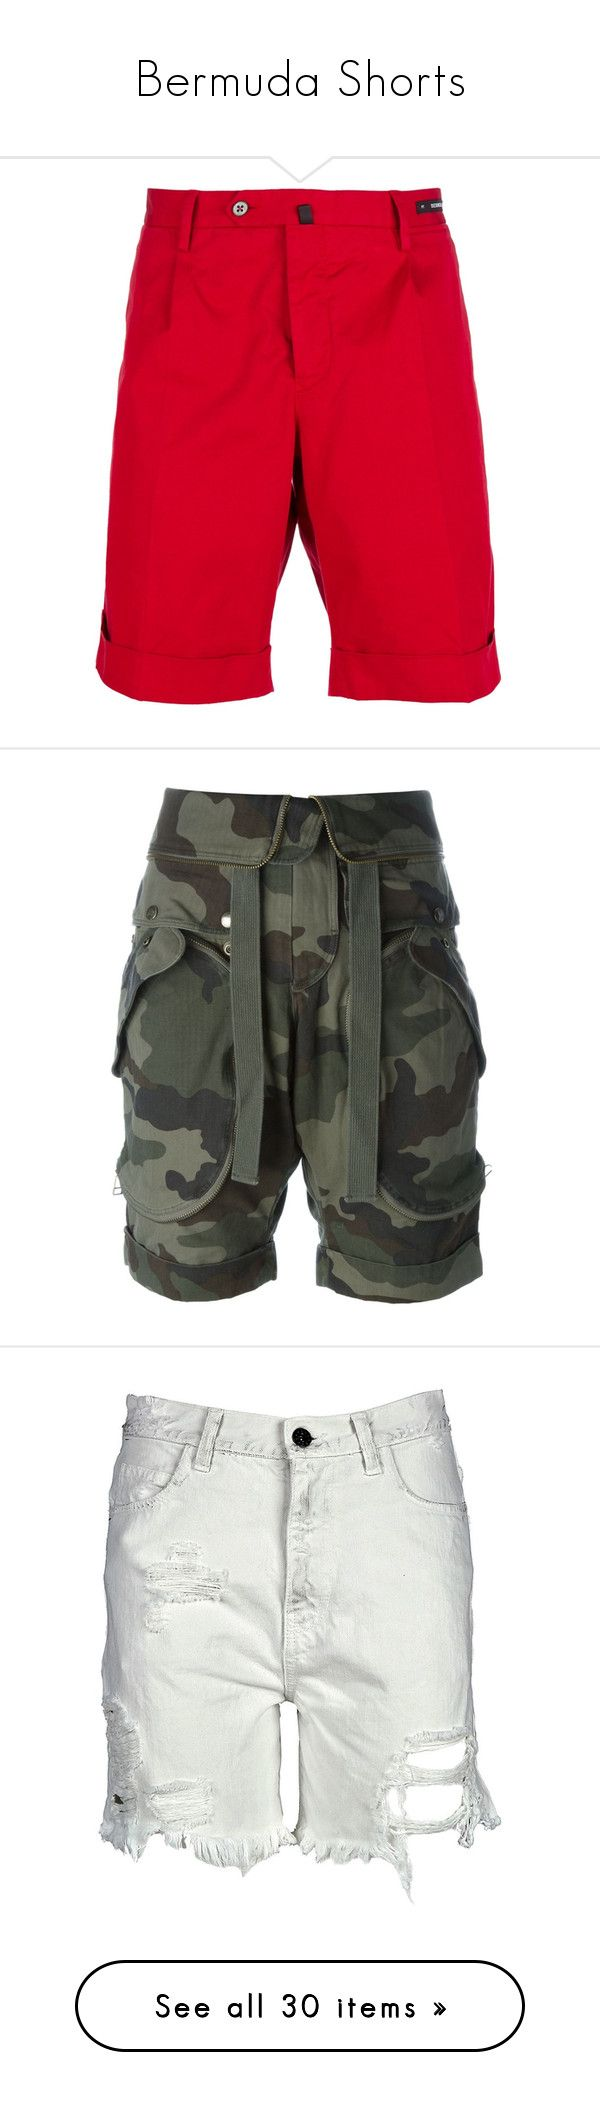 """""""Bermuda Shorts"""" by sheryl-lee ❤ liked on Polyvore featuring men's fashion, men's clothing, men's shorts, mens bermuda shorts, mens red shorts, shorts, pants, green, camoflage cargo shorts and camoflauge shorts"""